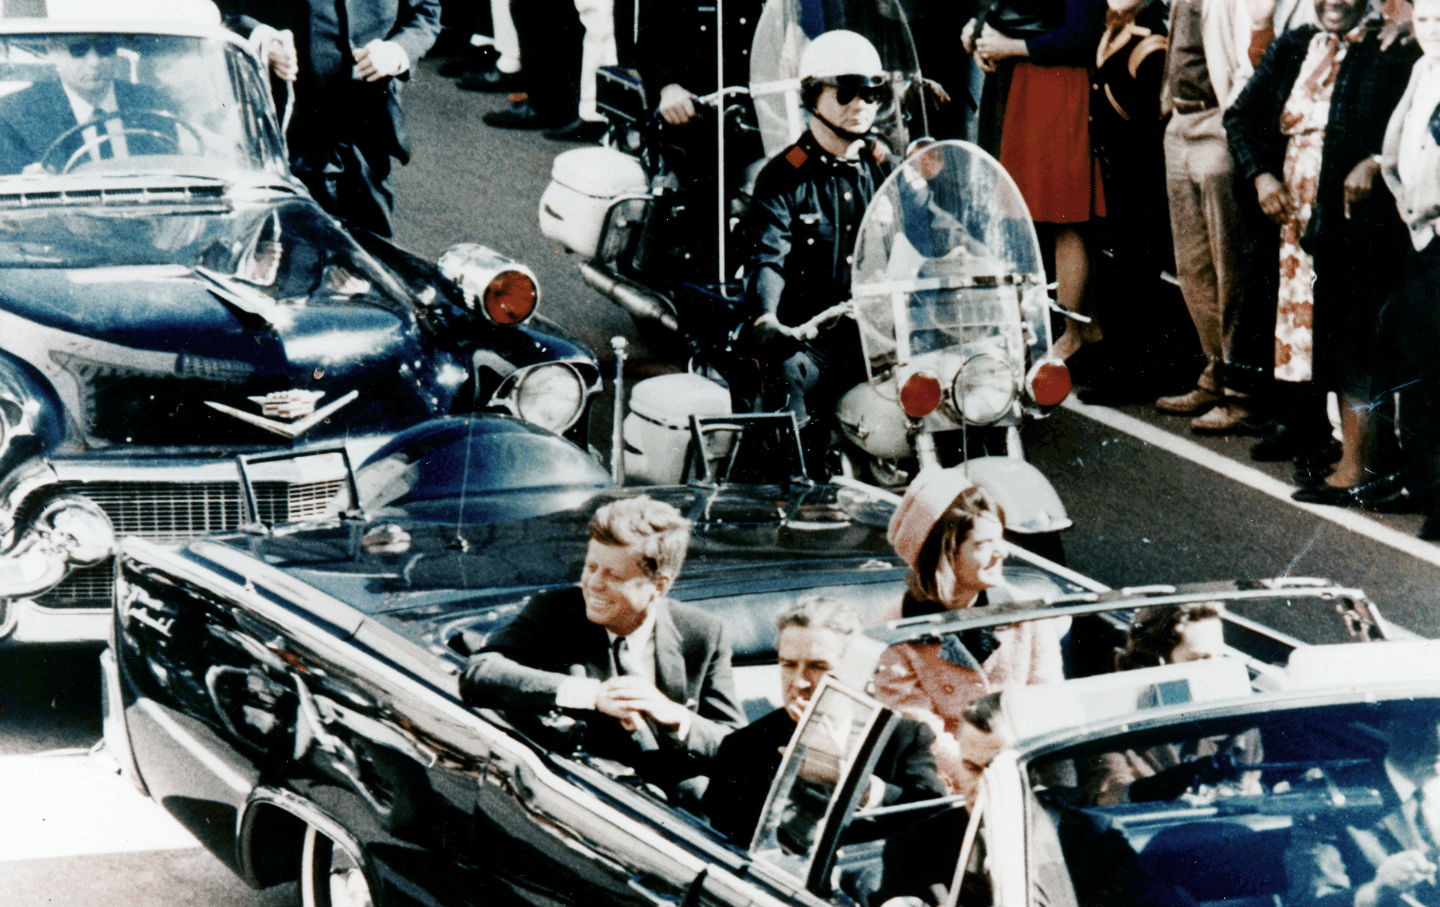 kennedy conspiracies A cia conspiracy, a mafia hit job, and a covert operation by lyndon b johnson are among the many conspiracy theories for who killed jfk.